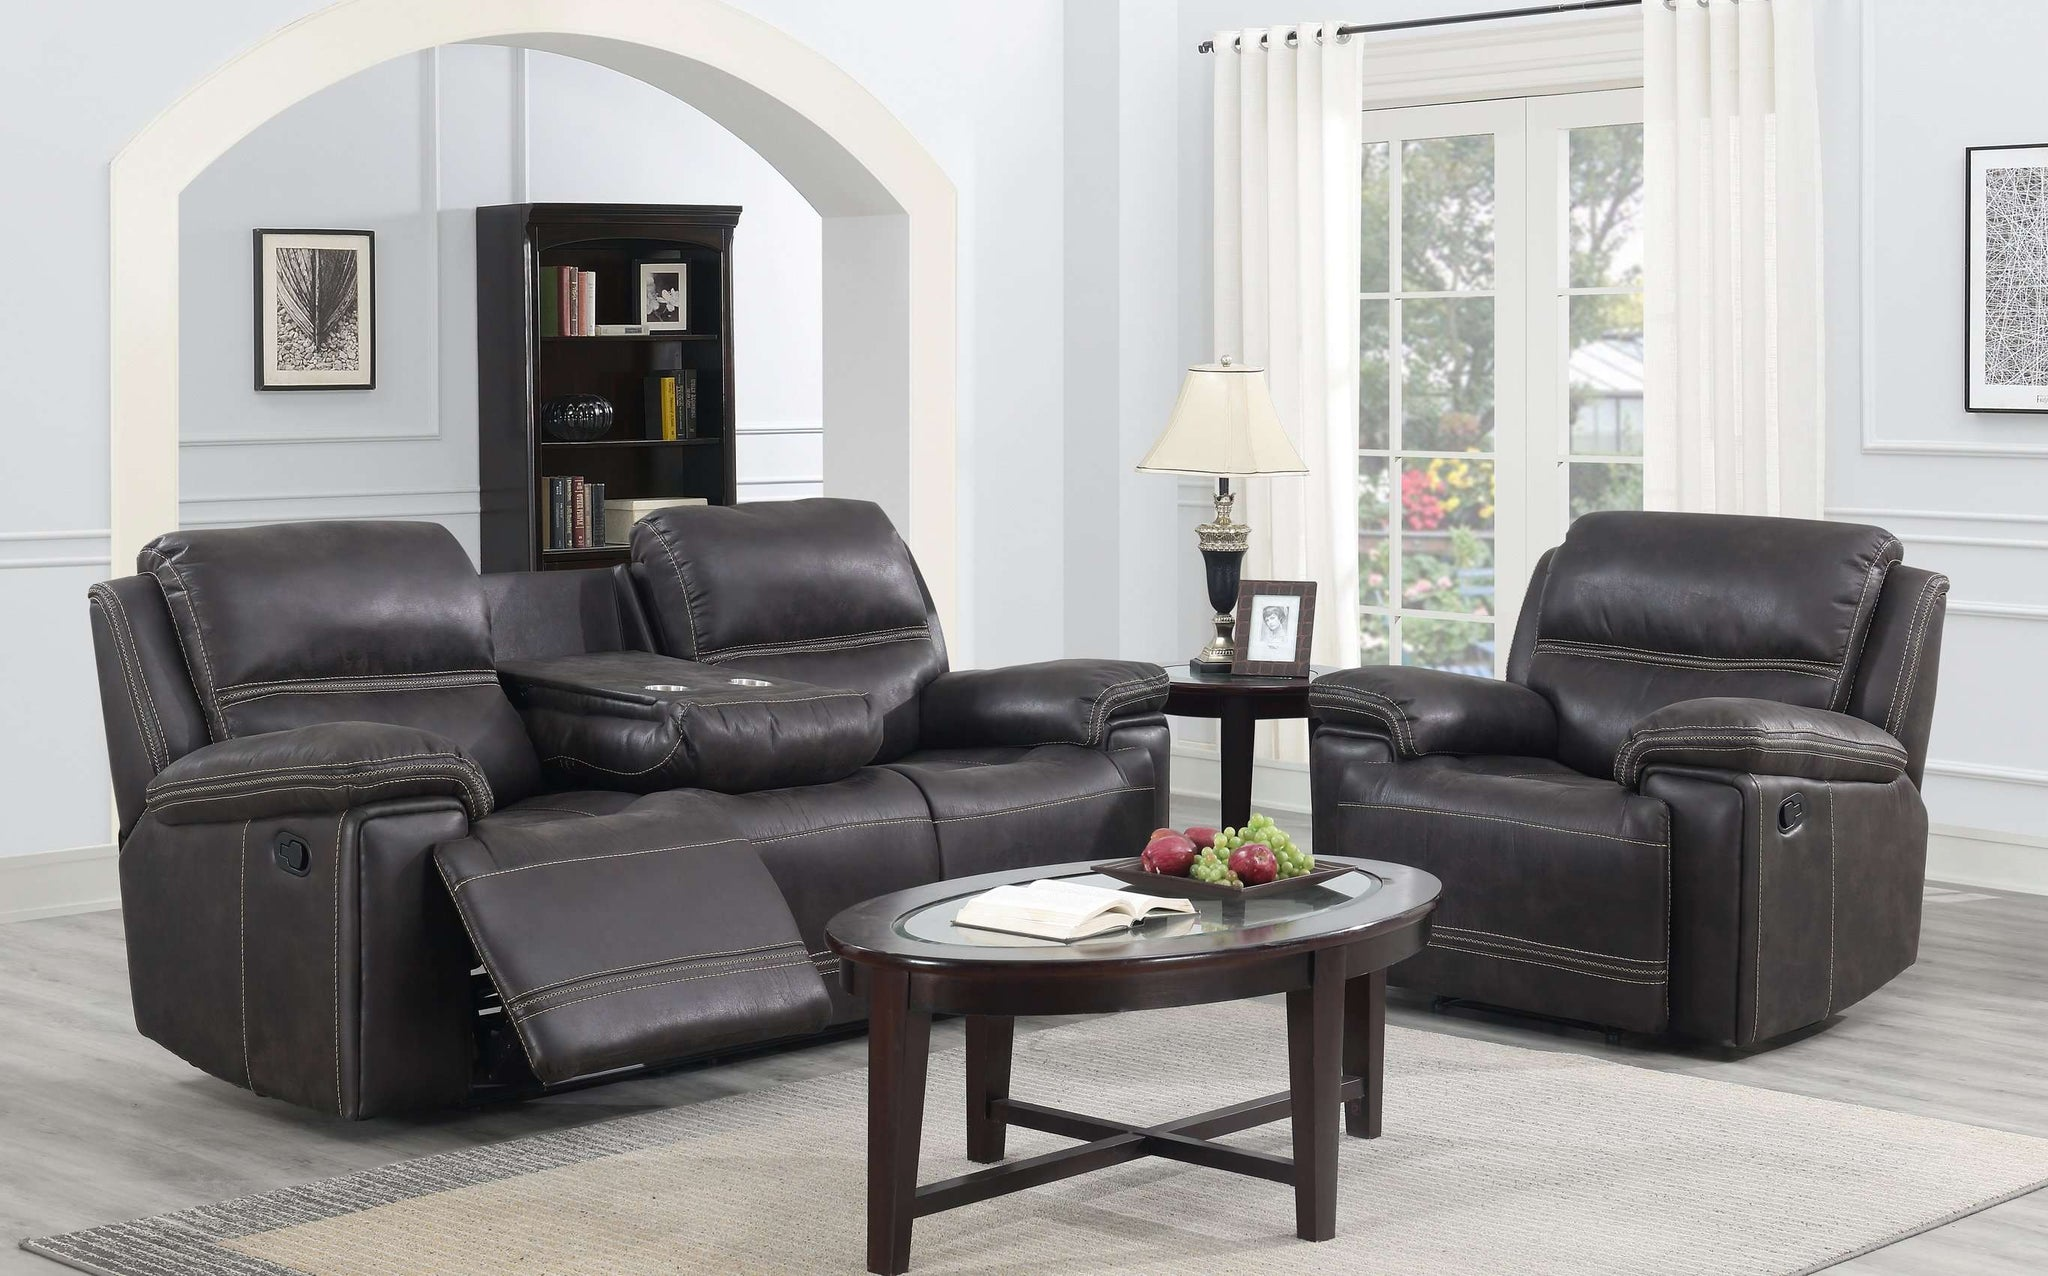 Beckley Sofa Set - Richicollection Furniture Warehouse